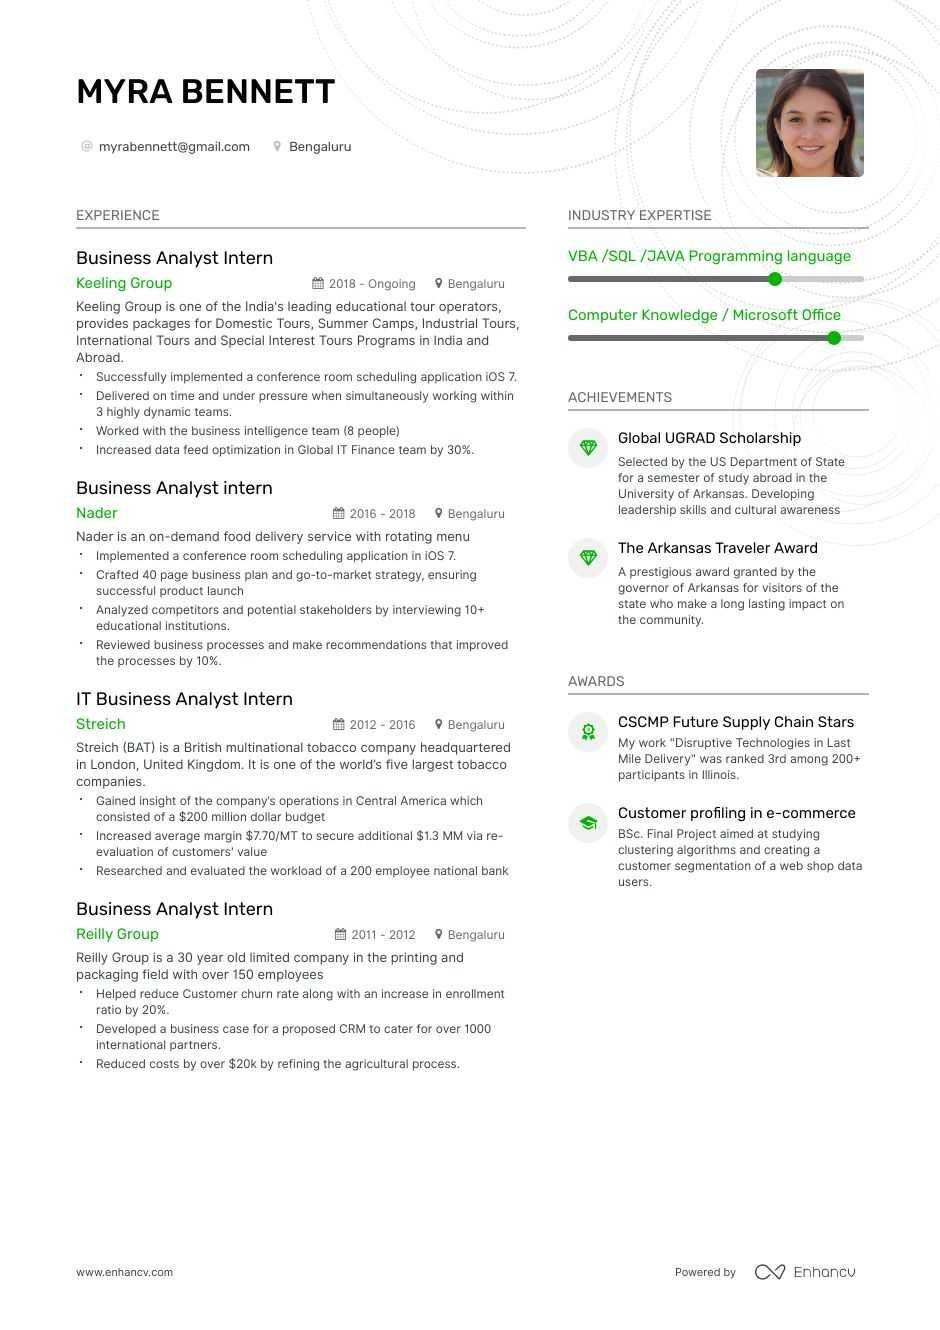 Example Of A Resume For Internship In 2021 Business Analyst Business Resume Resume Examples